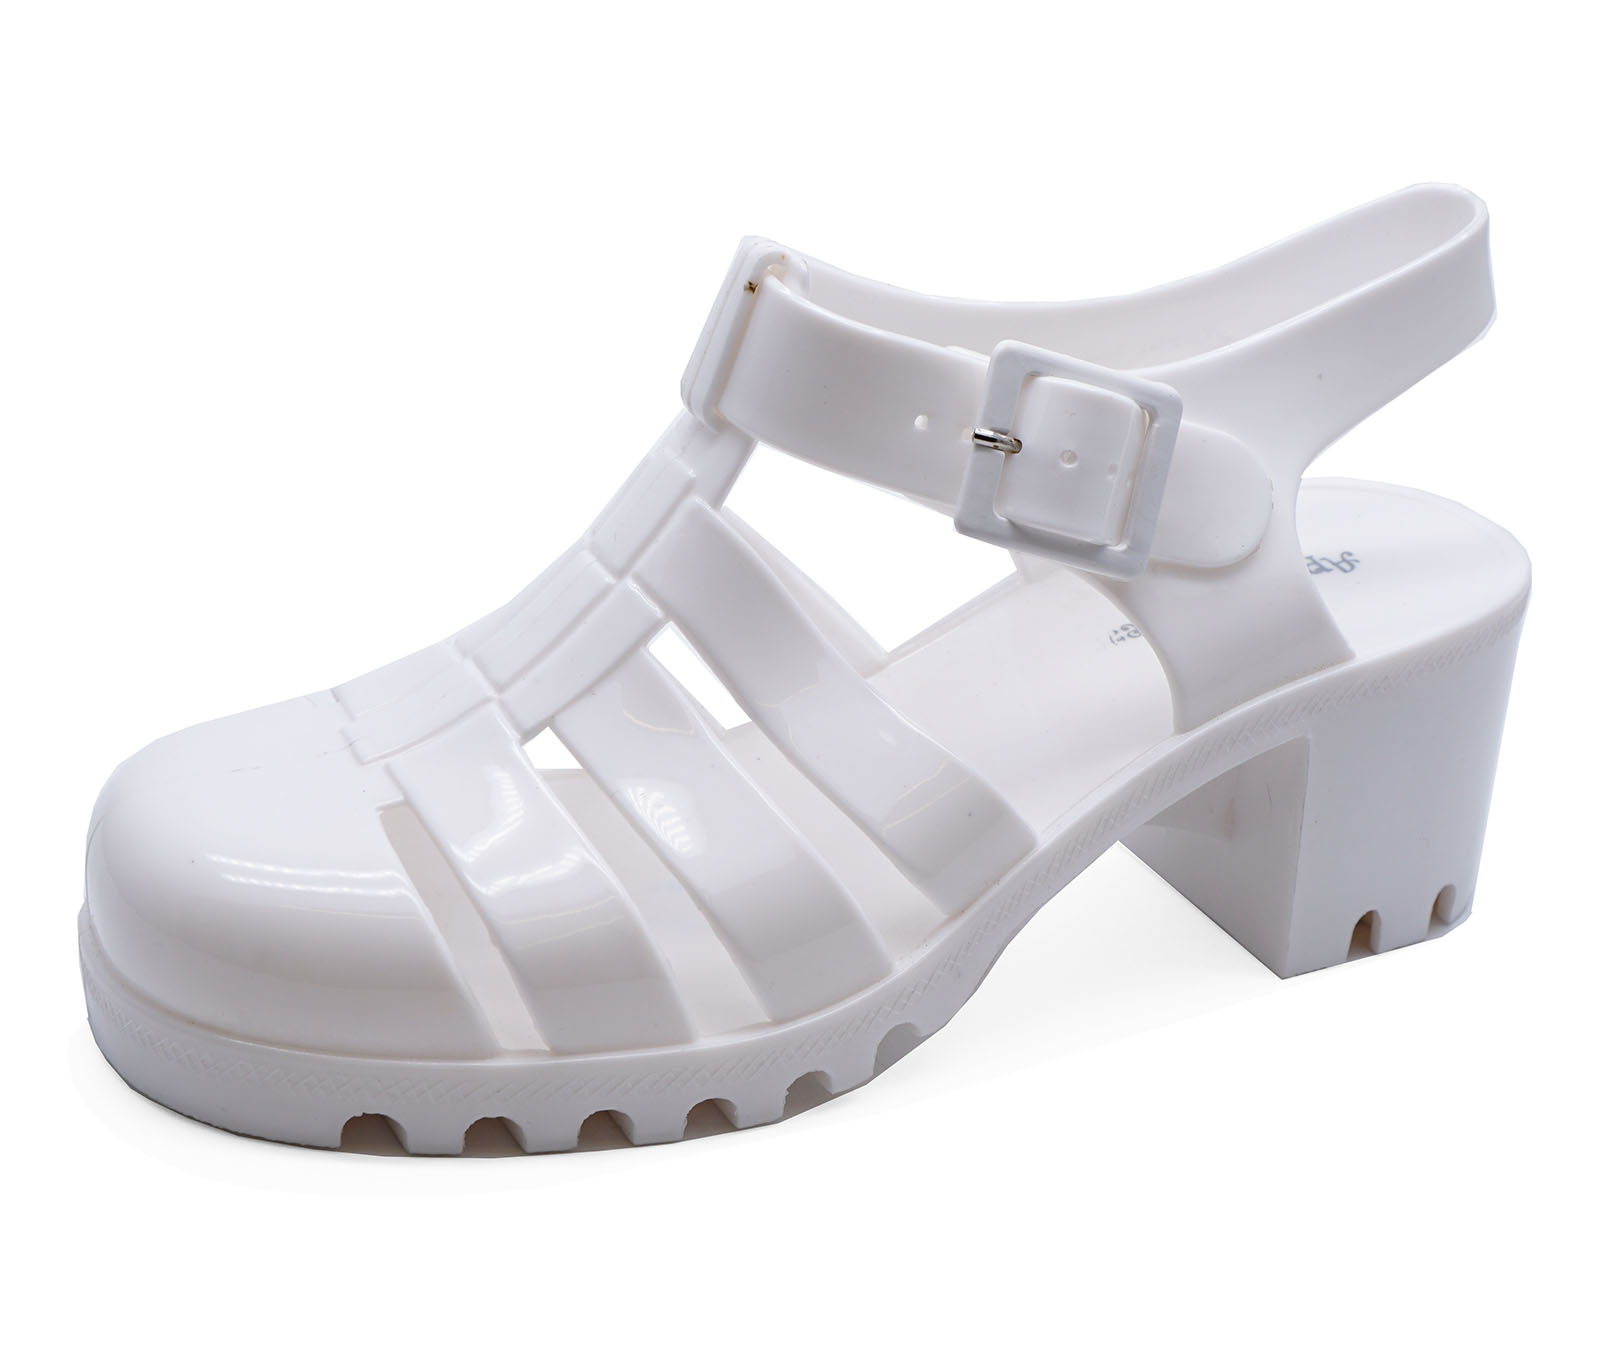 0dab4cc88edf Sentinel WOMENS WHITE CHUNKY HEEL PLATFORM JELLY HOLIDAY SANDALS PUMPS SHOES  SIZES 3-8